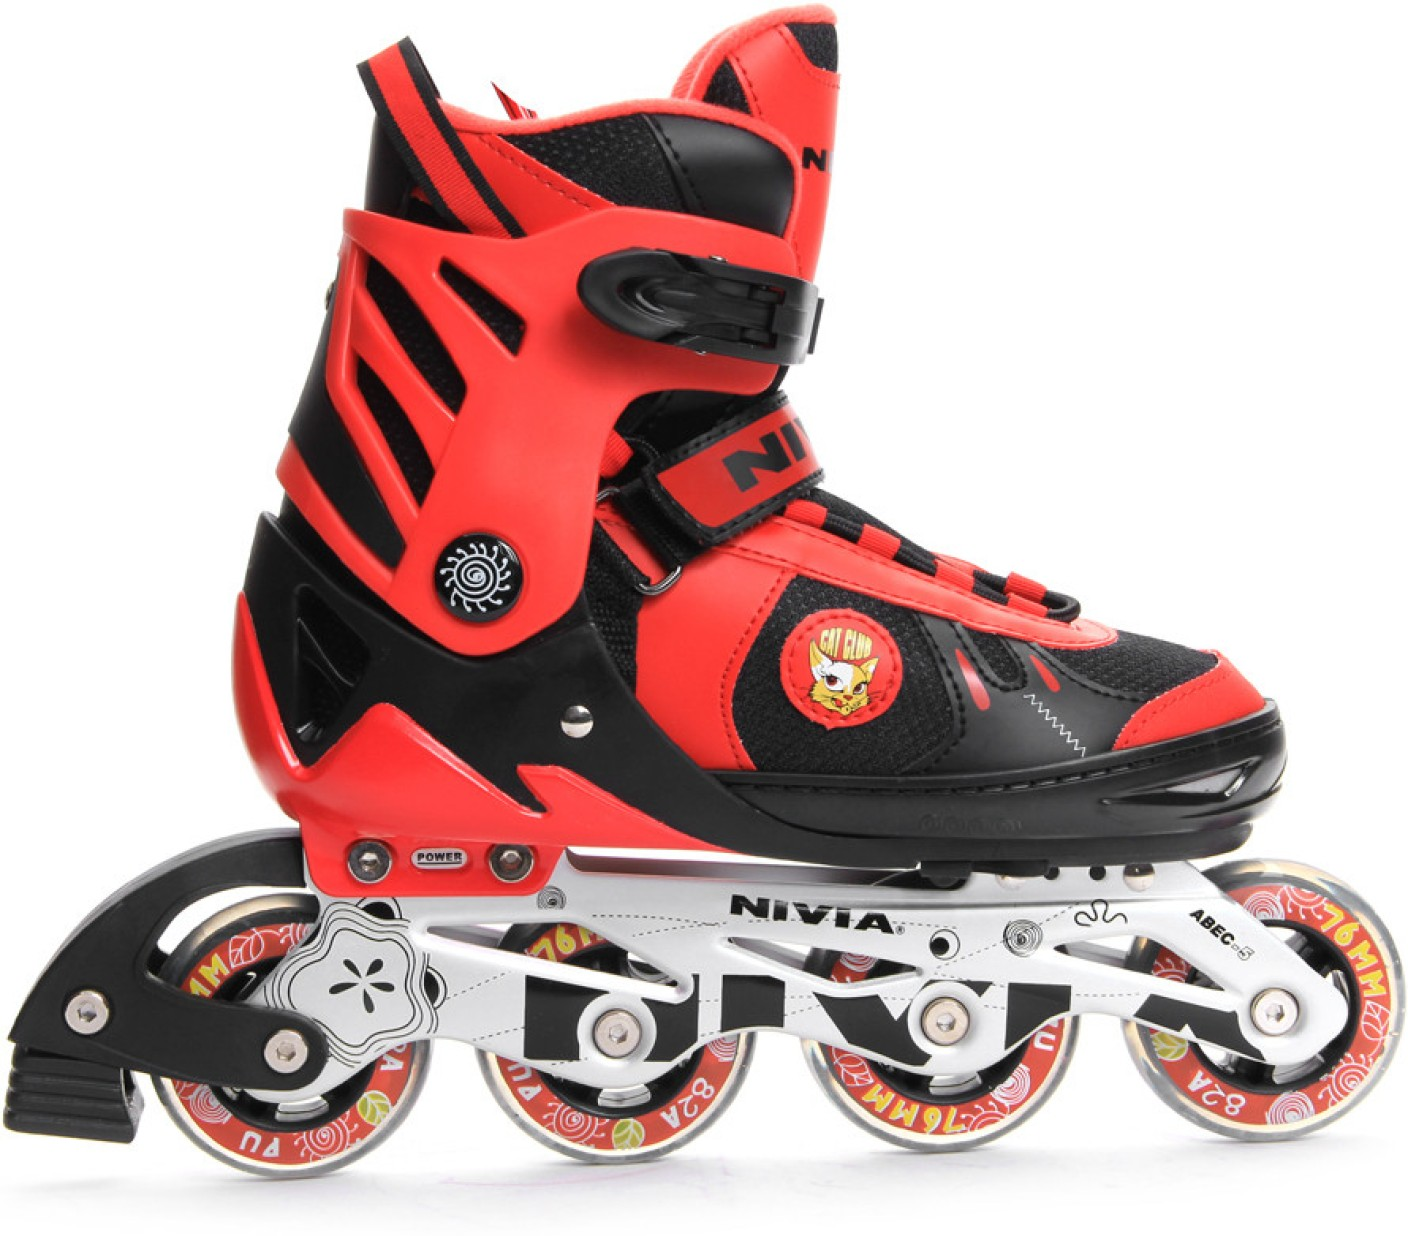 Roller skating shoes in chennai - Add To Cart